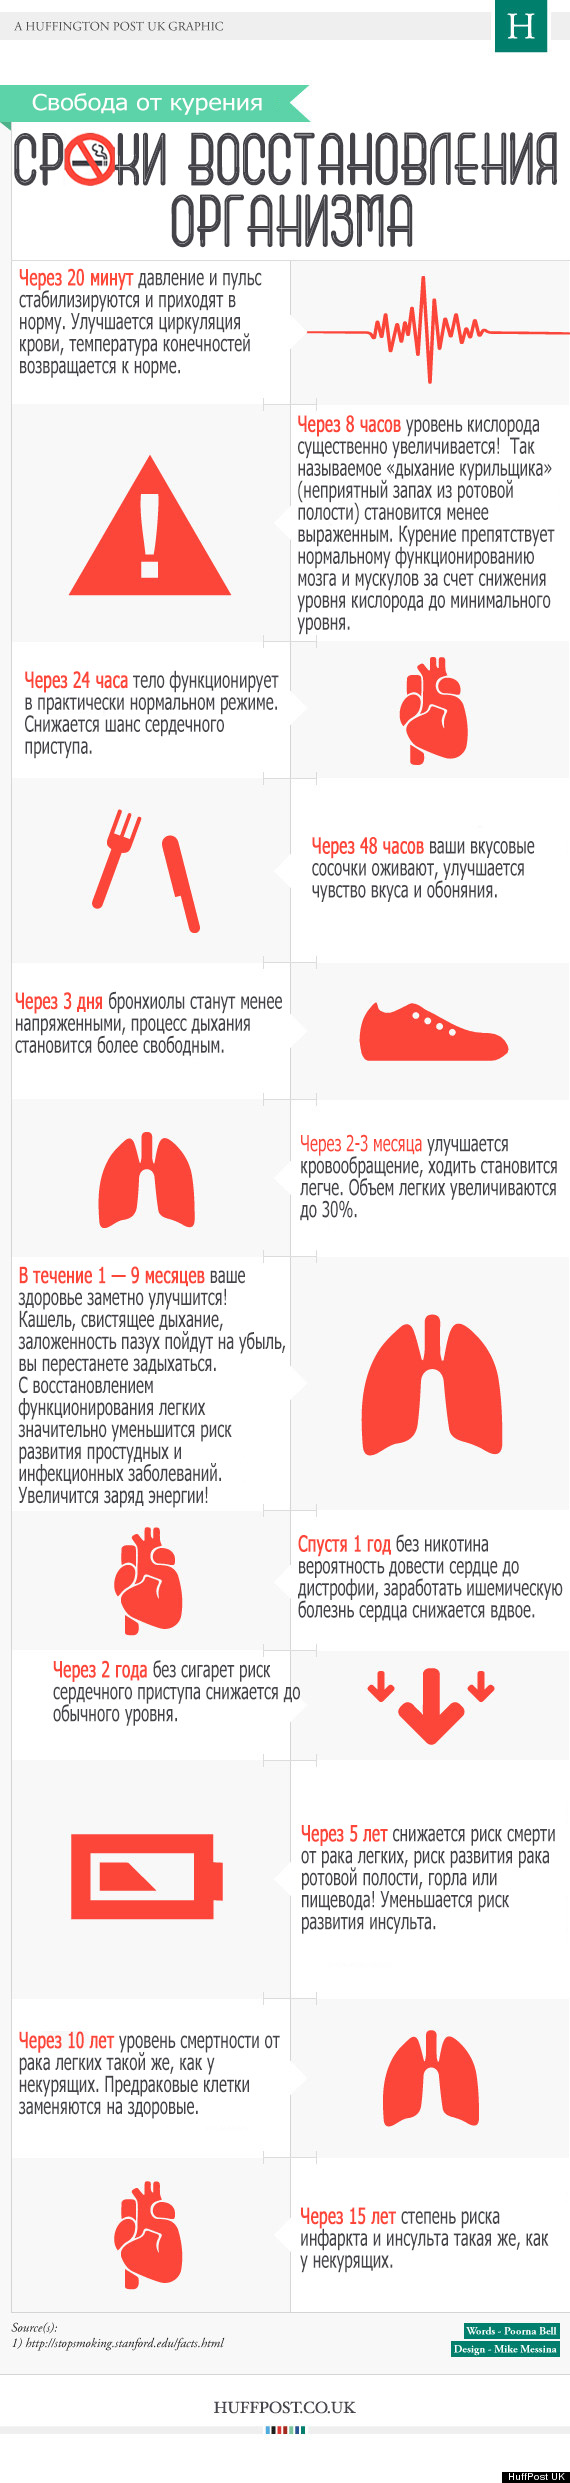 http://lifehacker.ru/wp-content/uploads/2013/10/smoking-timeline_524215f08c323.jpg